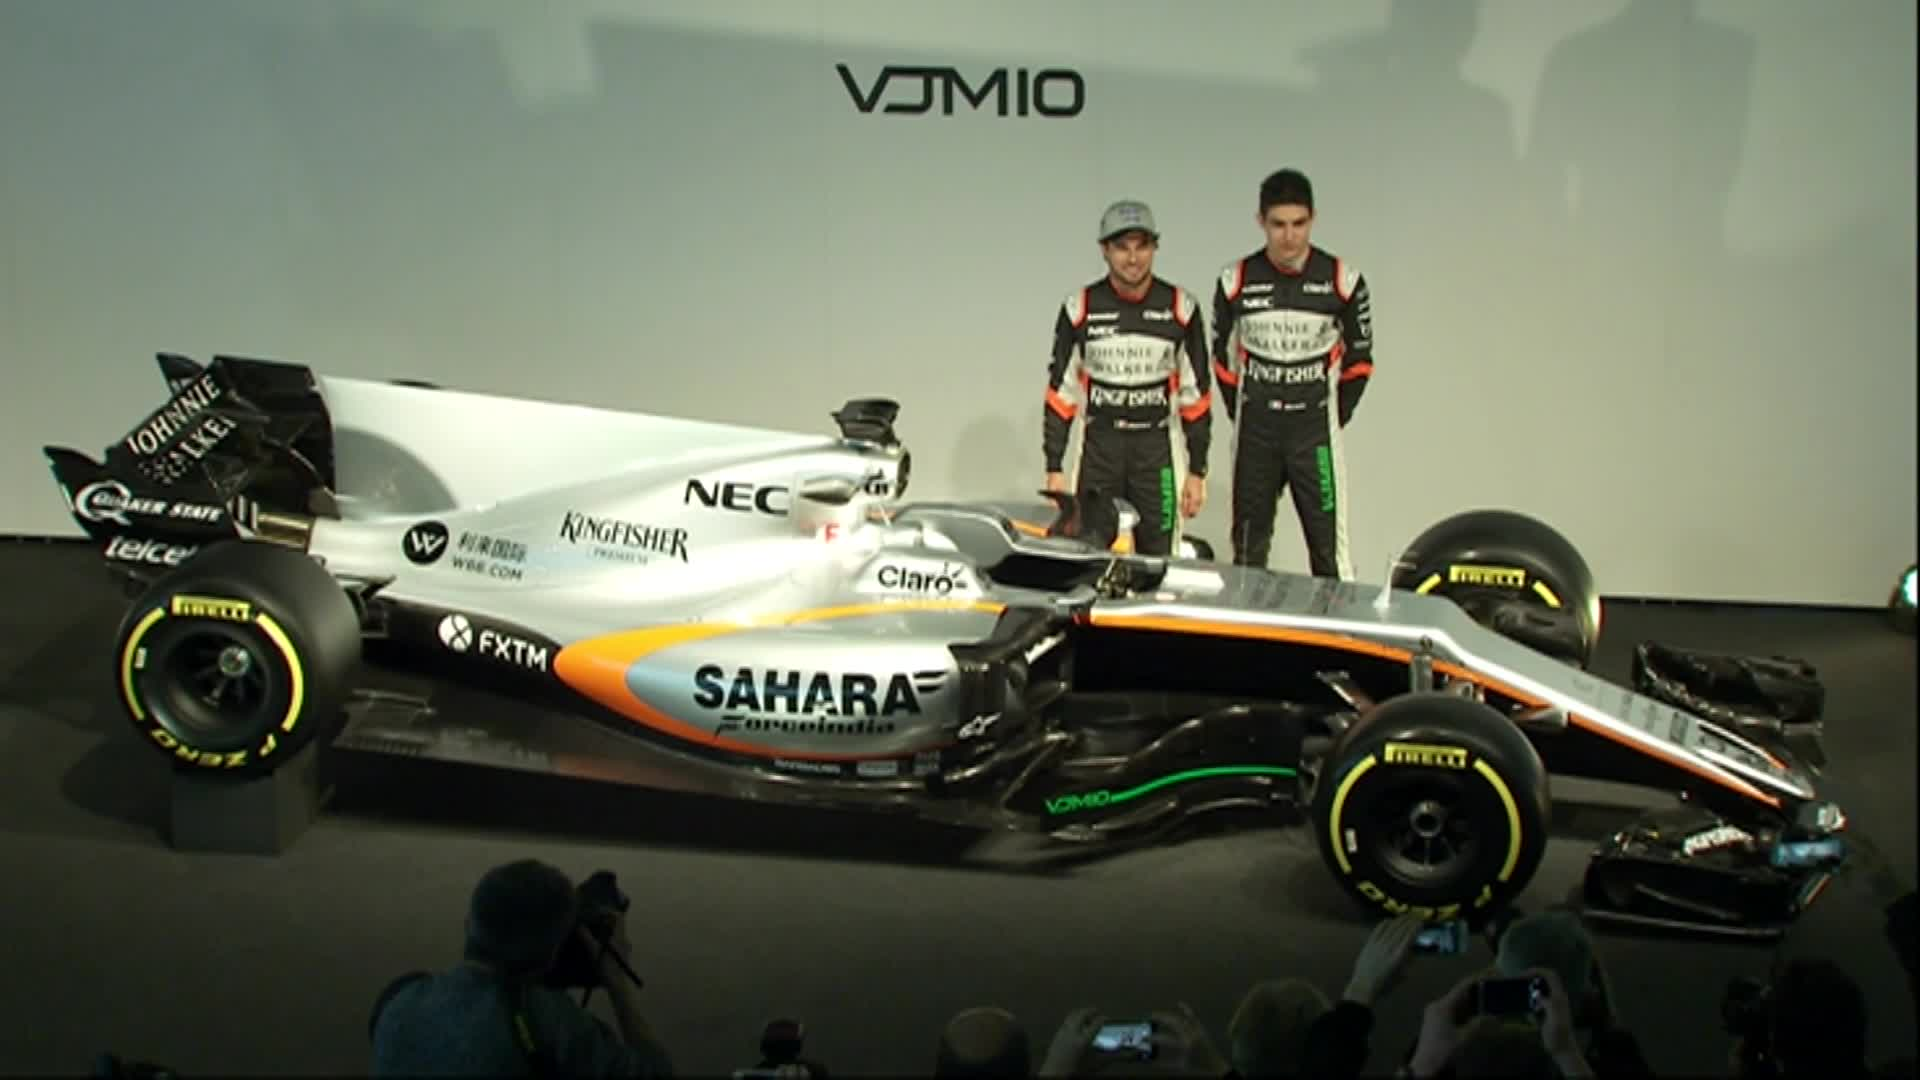 force india vjm10 wallpapers wallpaper cave. Black Bedroom Furniture Sets. Home Design Ideas